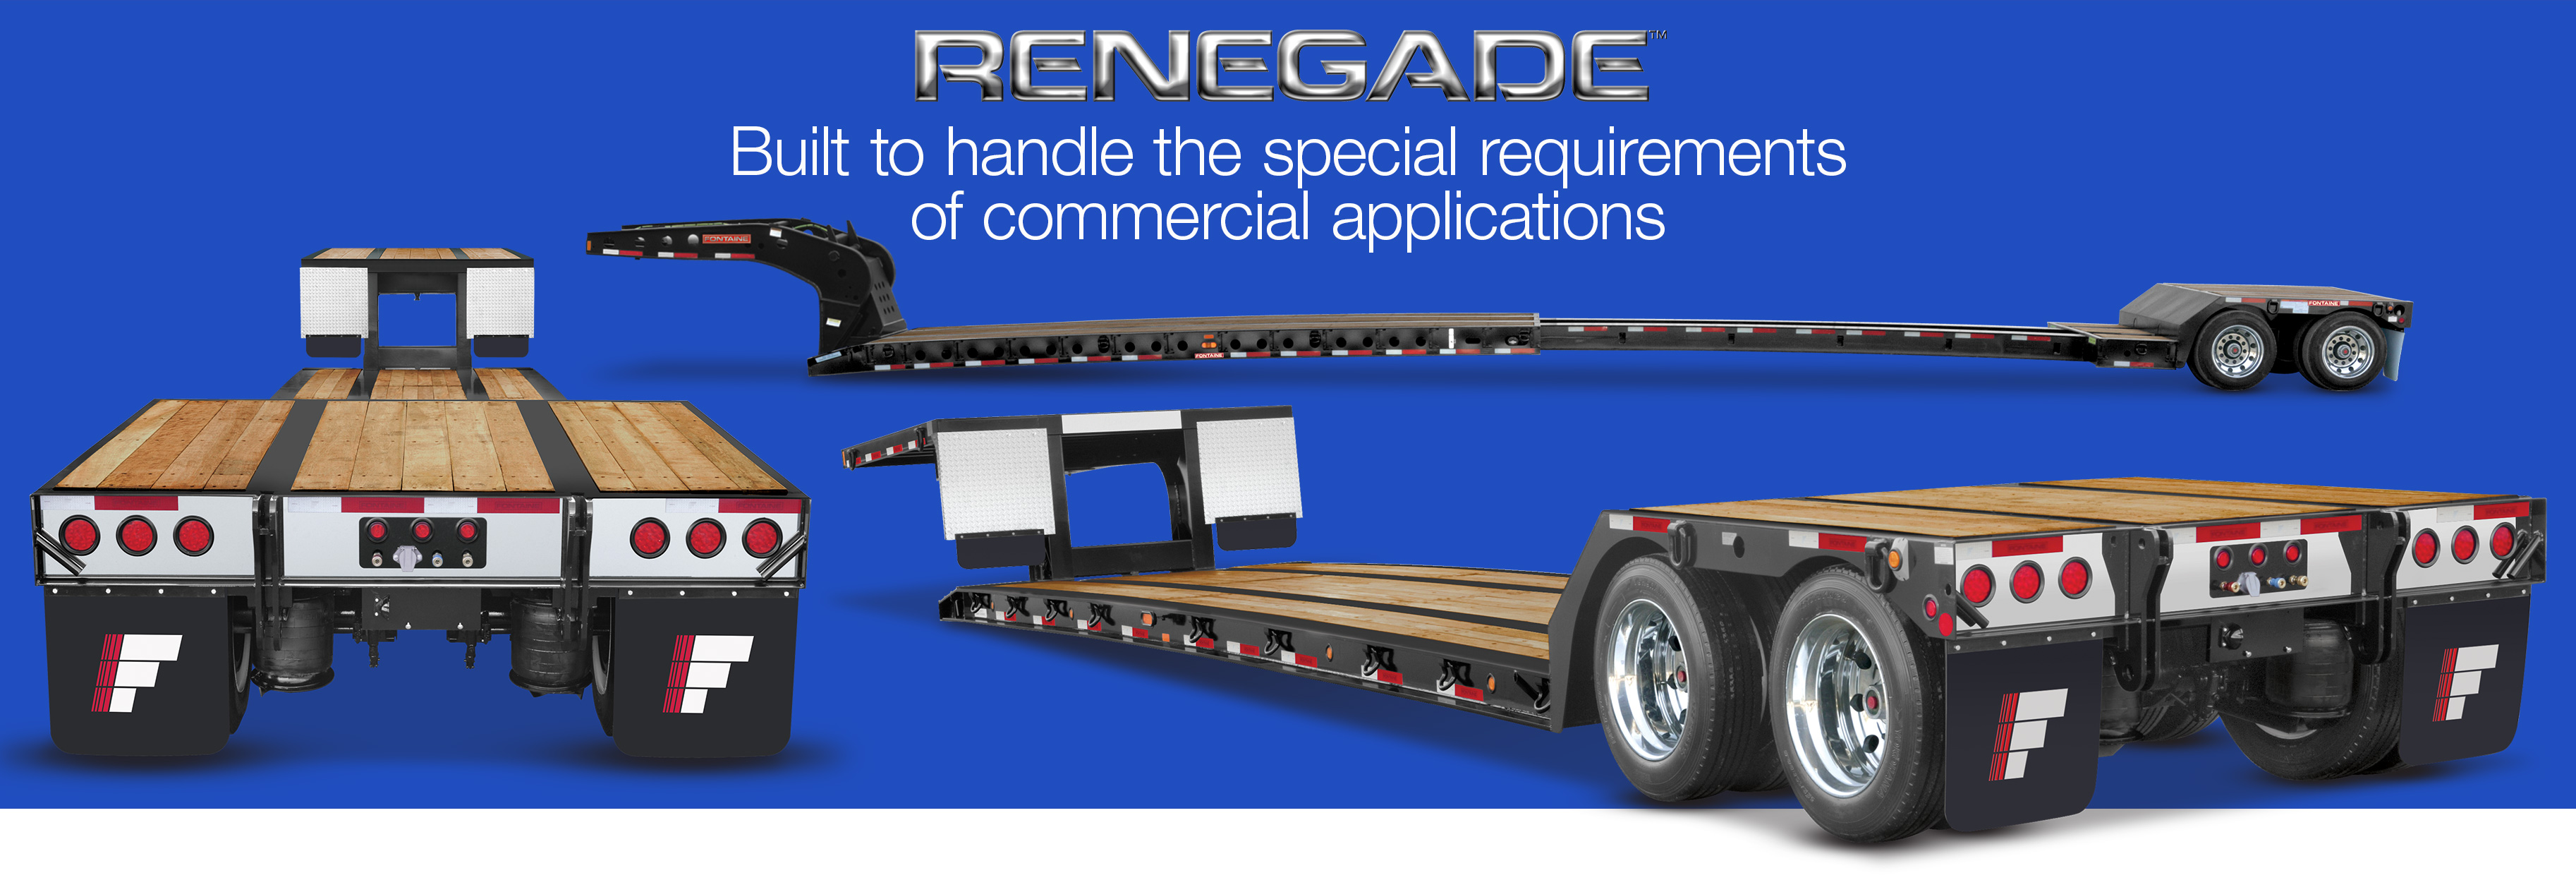 Renegade lowbed trailers manufactured by Fontaine Heavy Haul